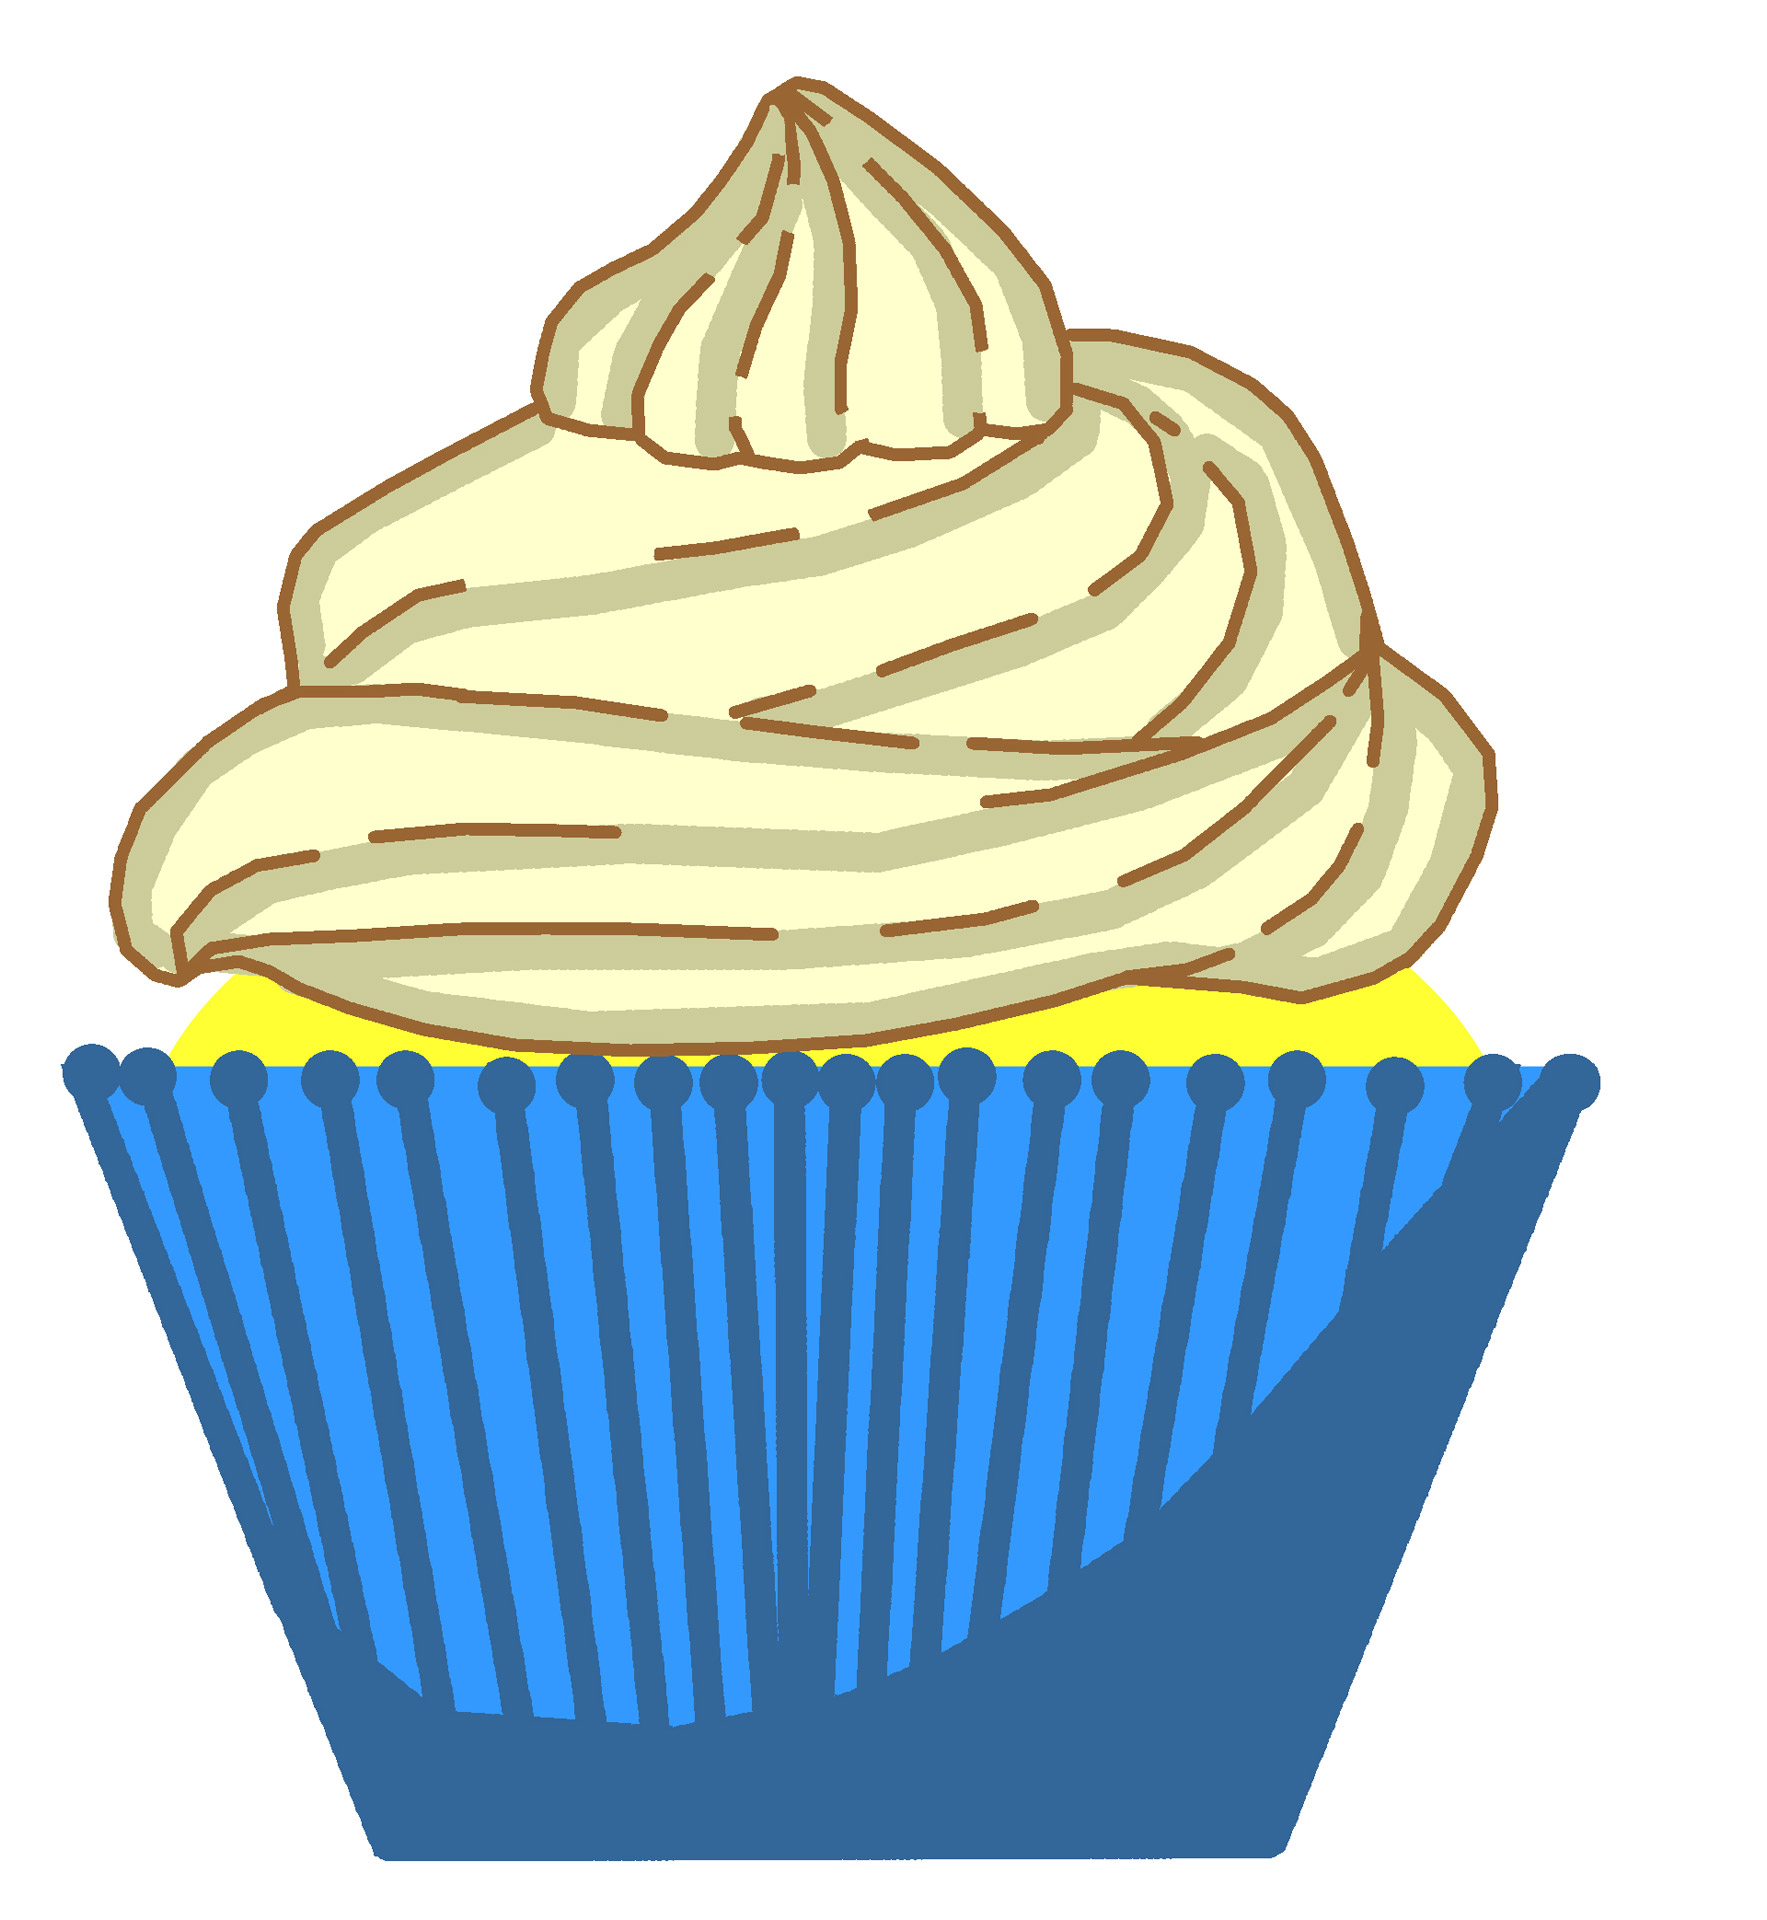 Muffins clipart vanilla cupcake. Frosted cookie clip art